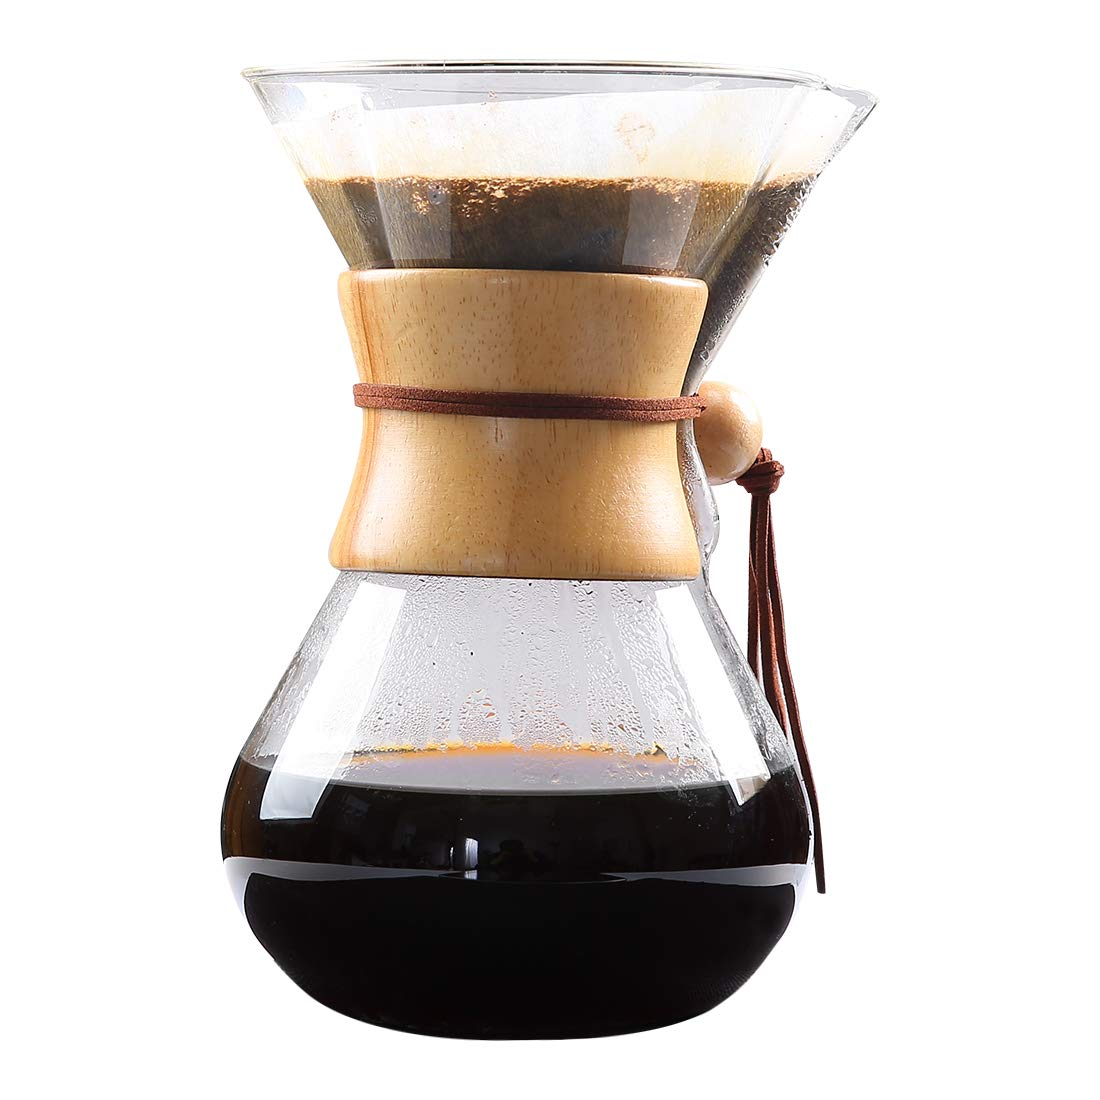 EMONIA Classic Pour Over Coffee Maker 27 oz Brewer Strong Borosilicate Glass Pour-over Glass Coffeemaker Elegant Hand Manual Coffee Cork Band (800 ML)